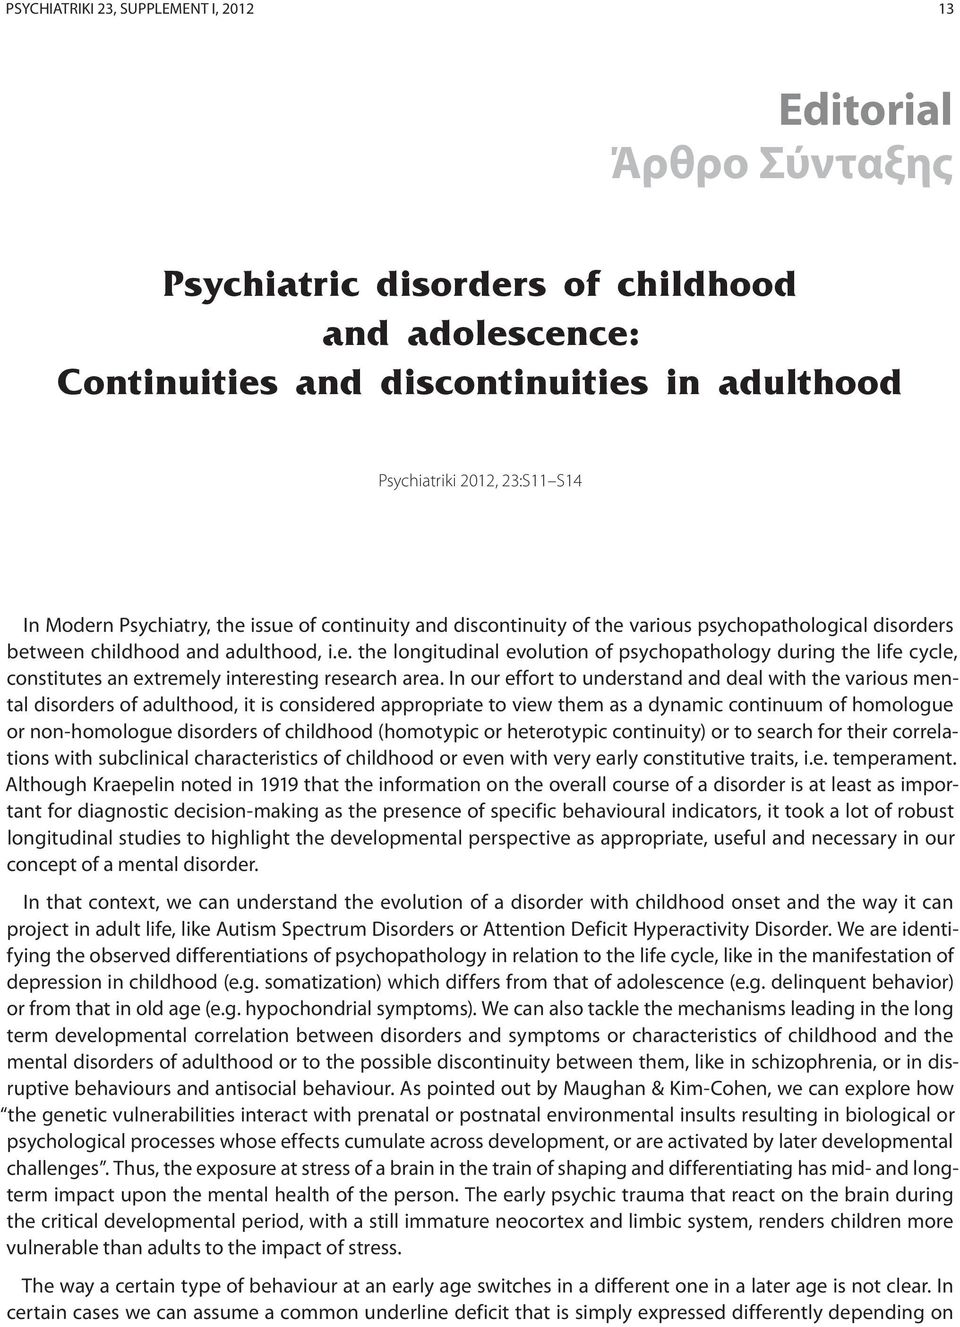 In our effort to understand and deal with the various mental disorders of adulthood, it is considered appropriate to view them as a dynamic continuum of homologue or non-homologue disorders of